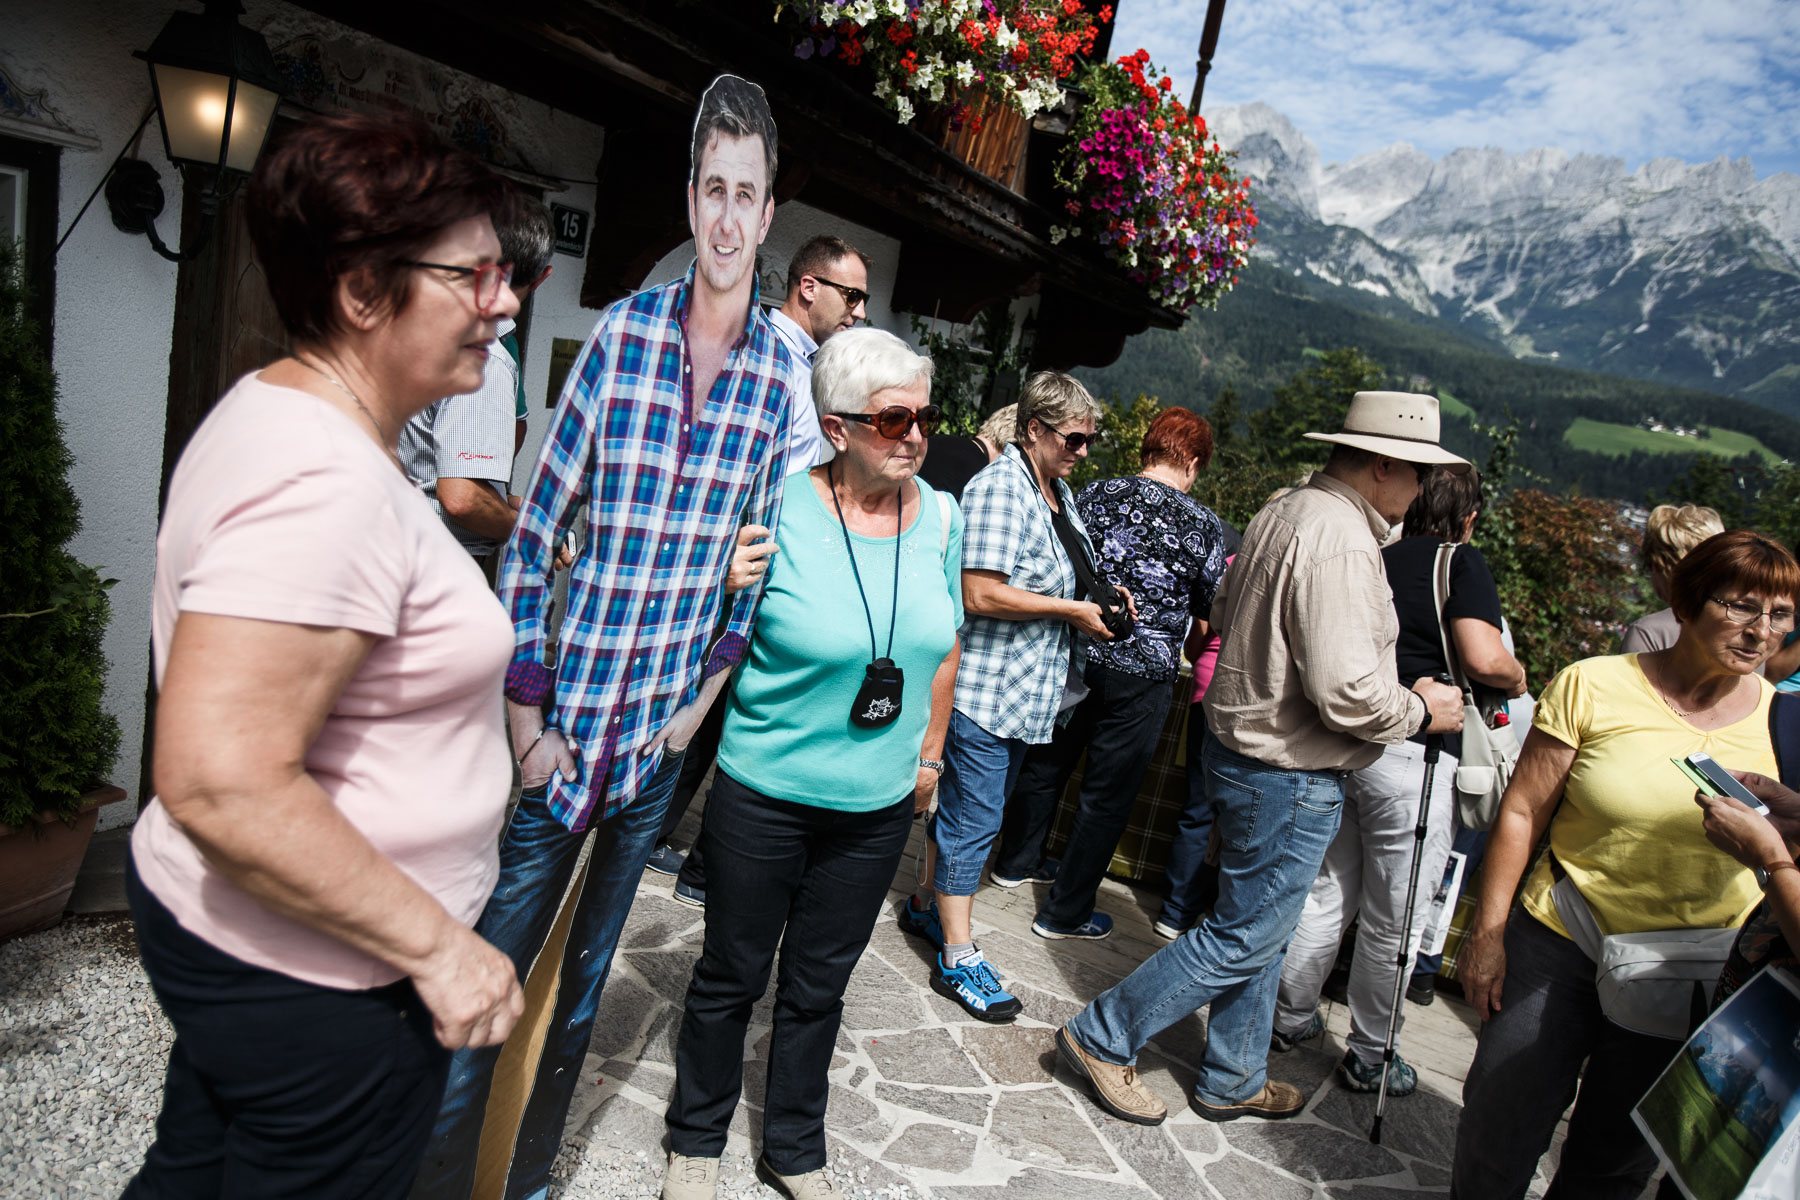 Slovenski turisti med fotografiranjem s podobo dr. Martina Gruberja iz serije Gorski zdravnik pred hišo v Ellmauu, ki služi kot njegova ordinacija v seriji. // Slovenian tourist take pictures with a cardboard cutout of dr. Martin Gruber from the series Der Bergdoktor (Mountain Medic) in front of the house that serves as his office in Ellmau, Tyrol.